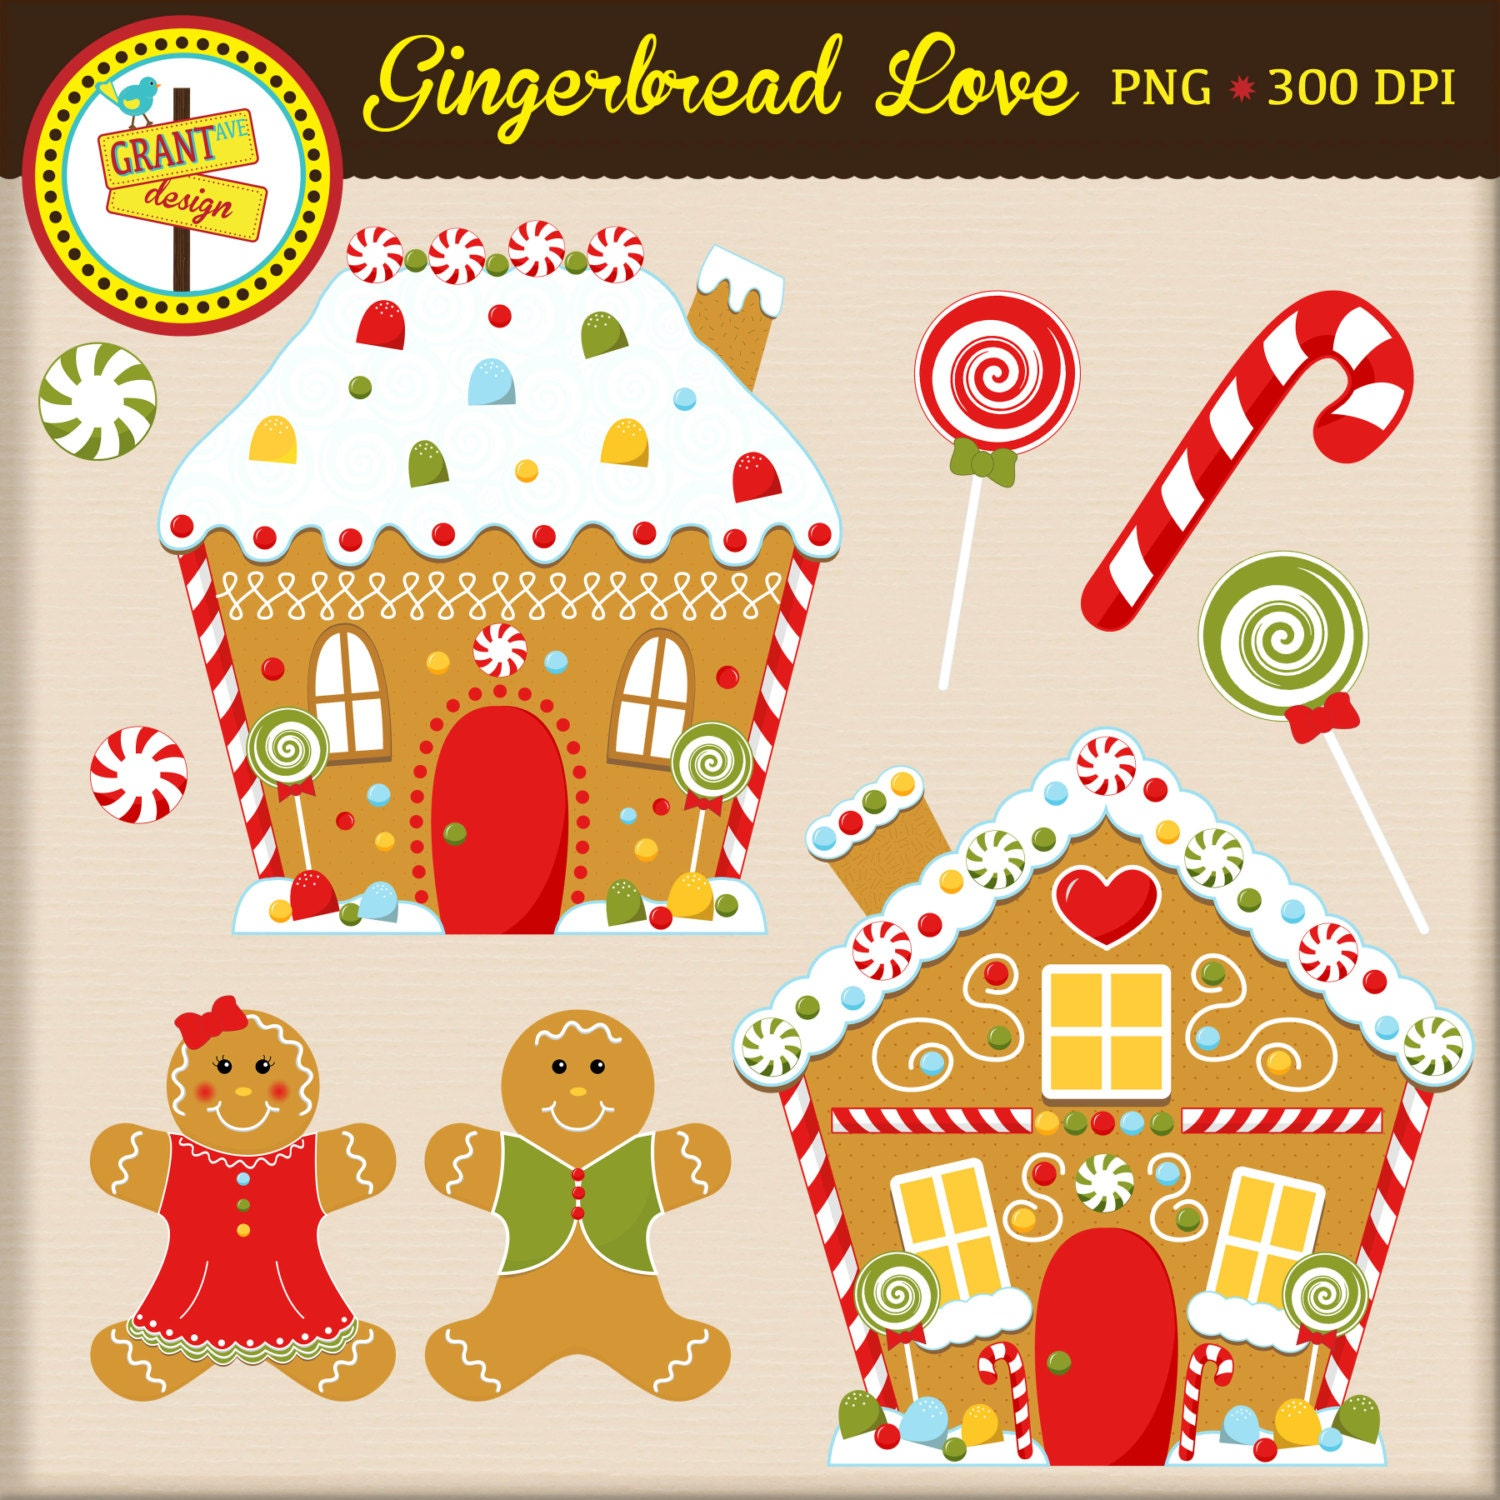 free gingerbread house clipart - photo #26